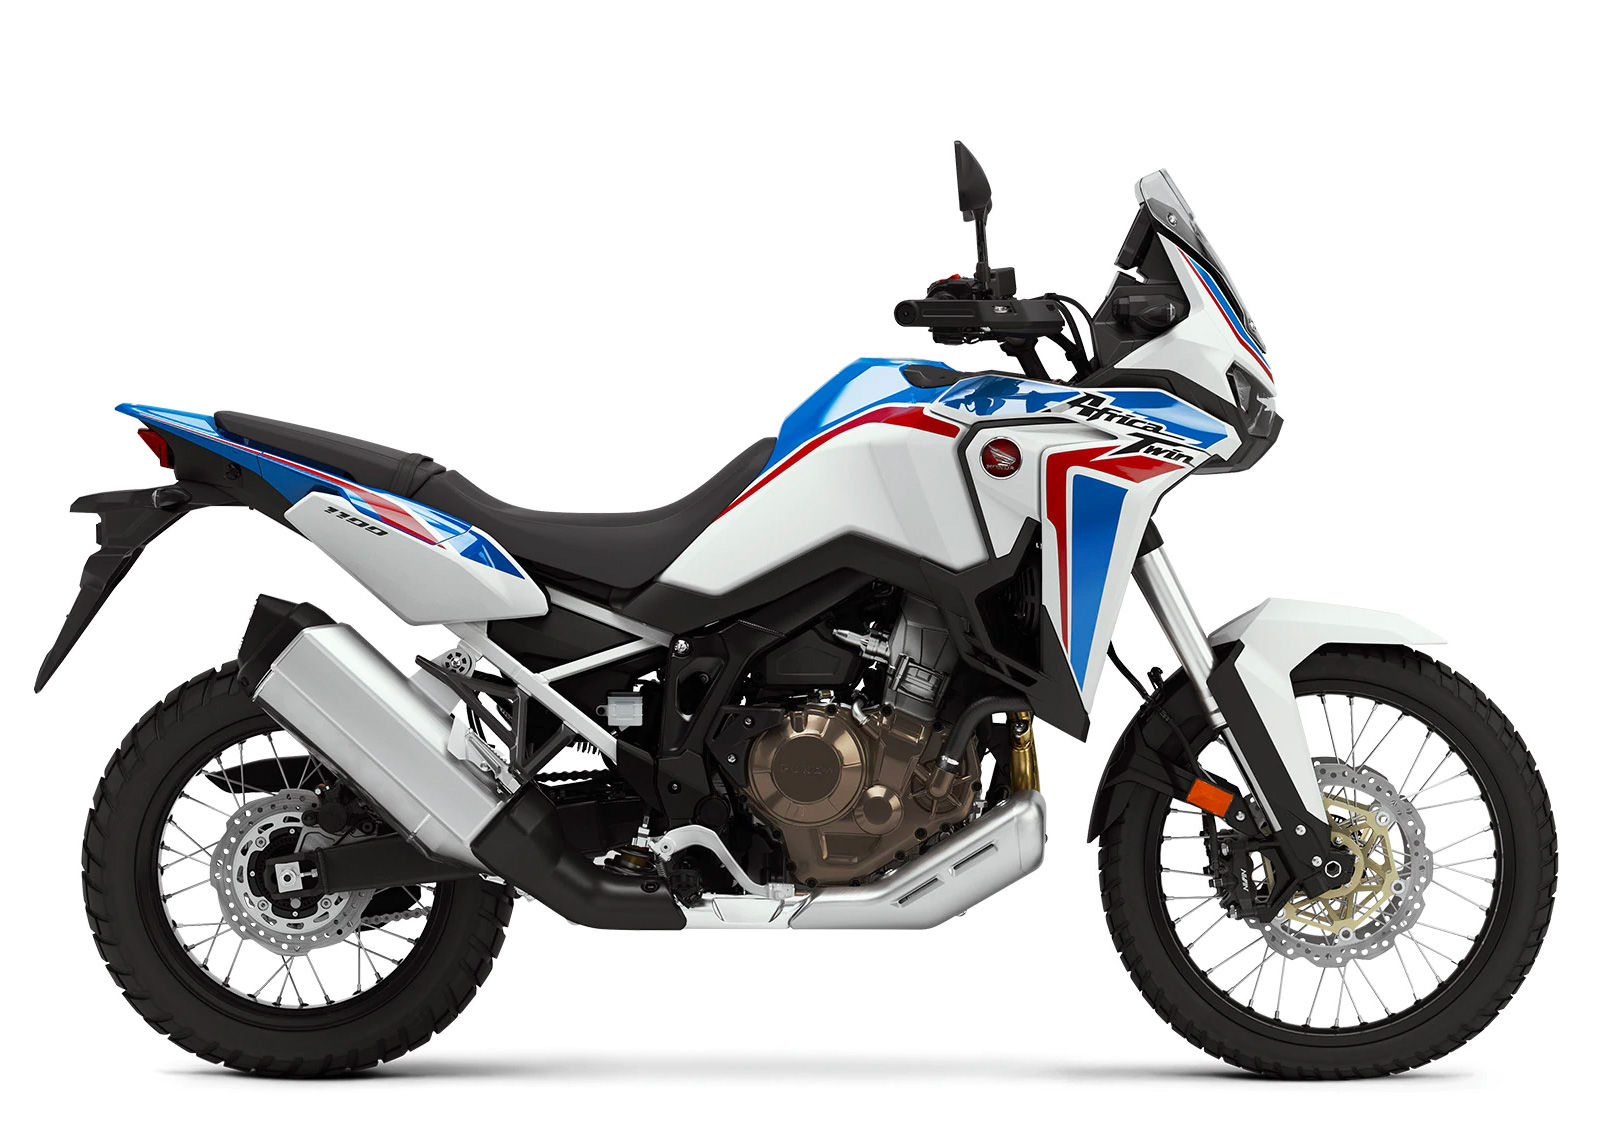 2021 Honda Africa Twin Looks Like A Winner at werd.com